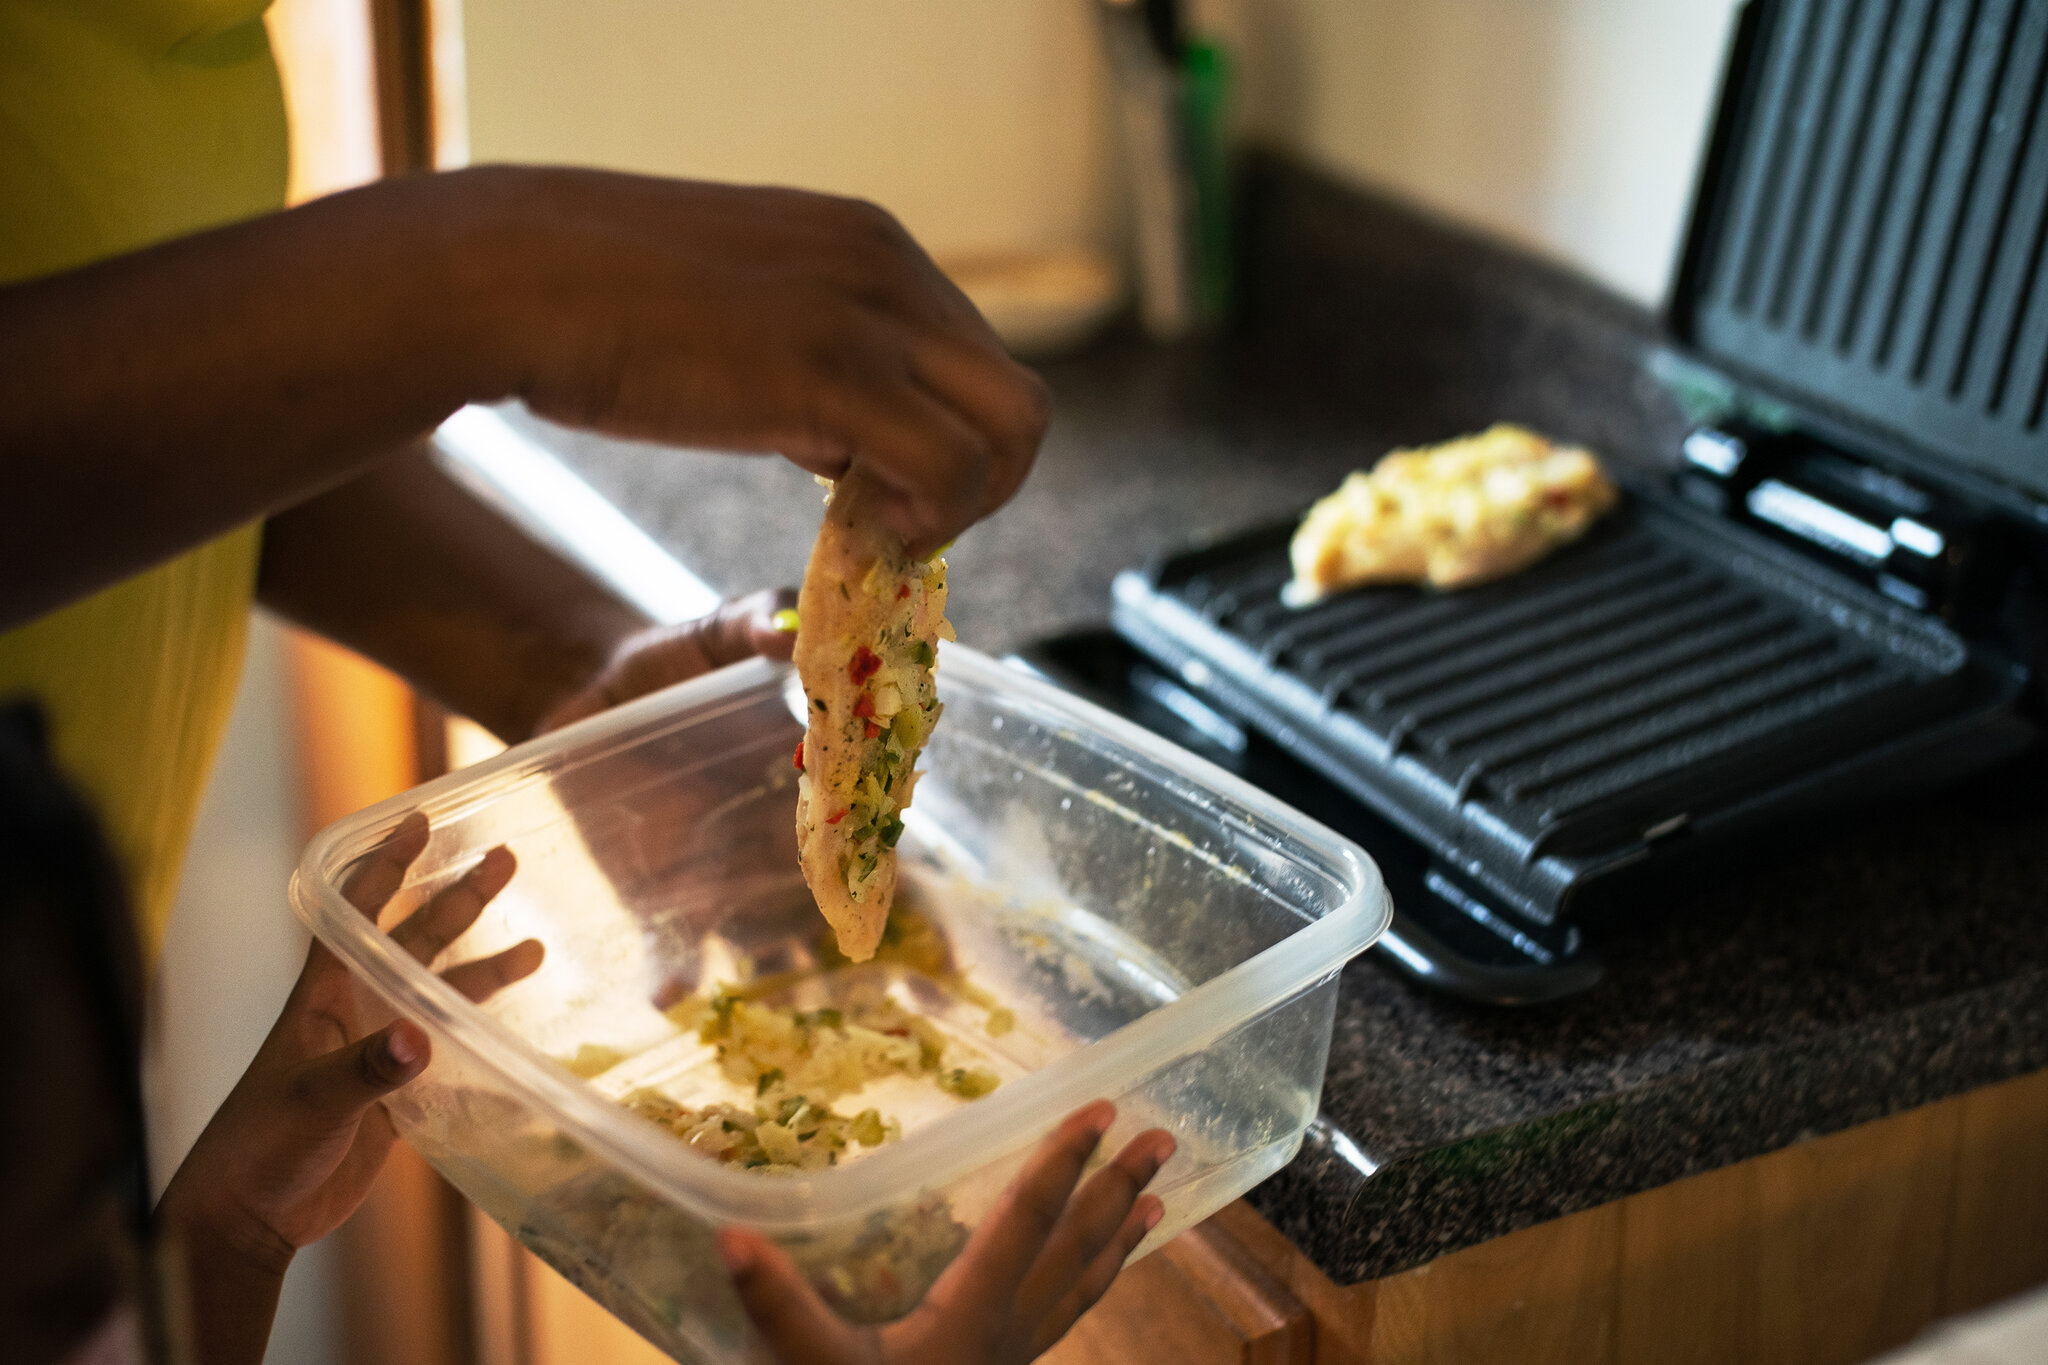 Leslie prepares delicious chicken cutlets thanks to nonprofit organizations such as Masbia in Brooklyn have a decent meal on their table. Photo by Todd Heisler.